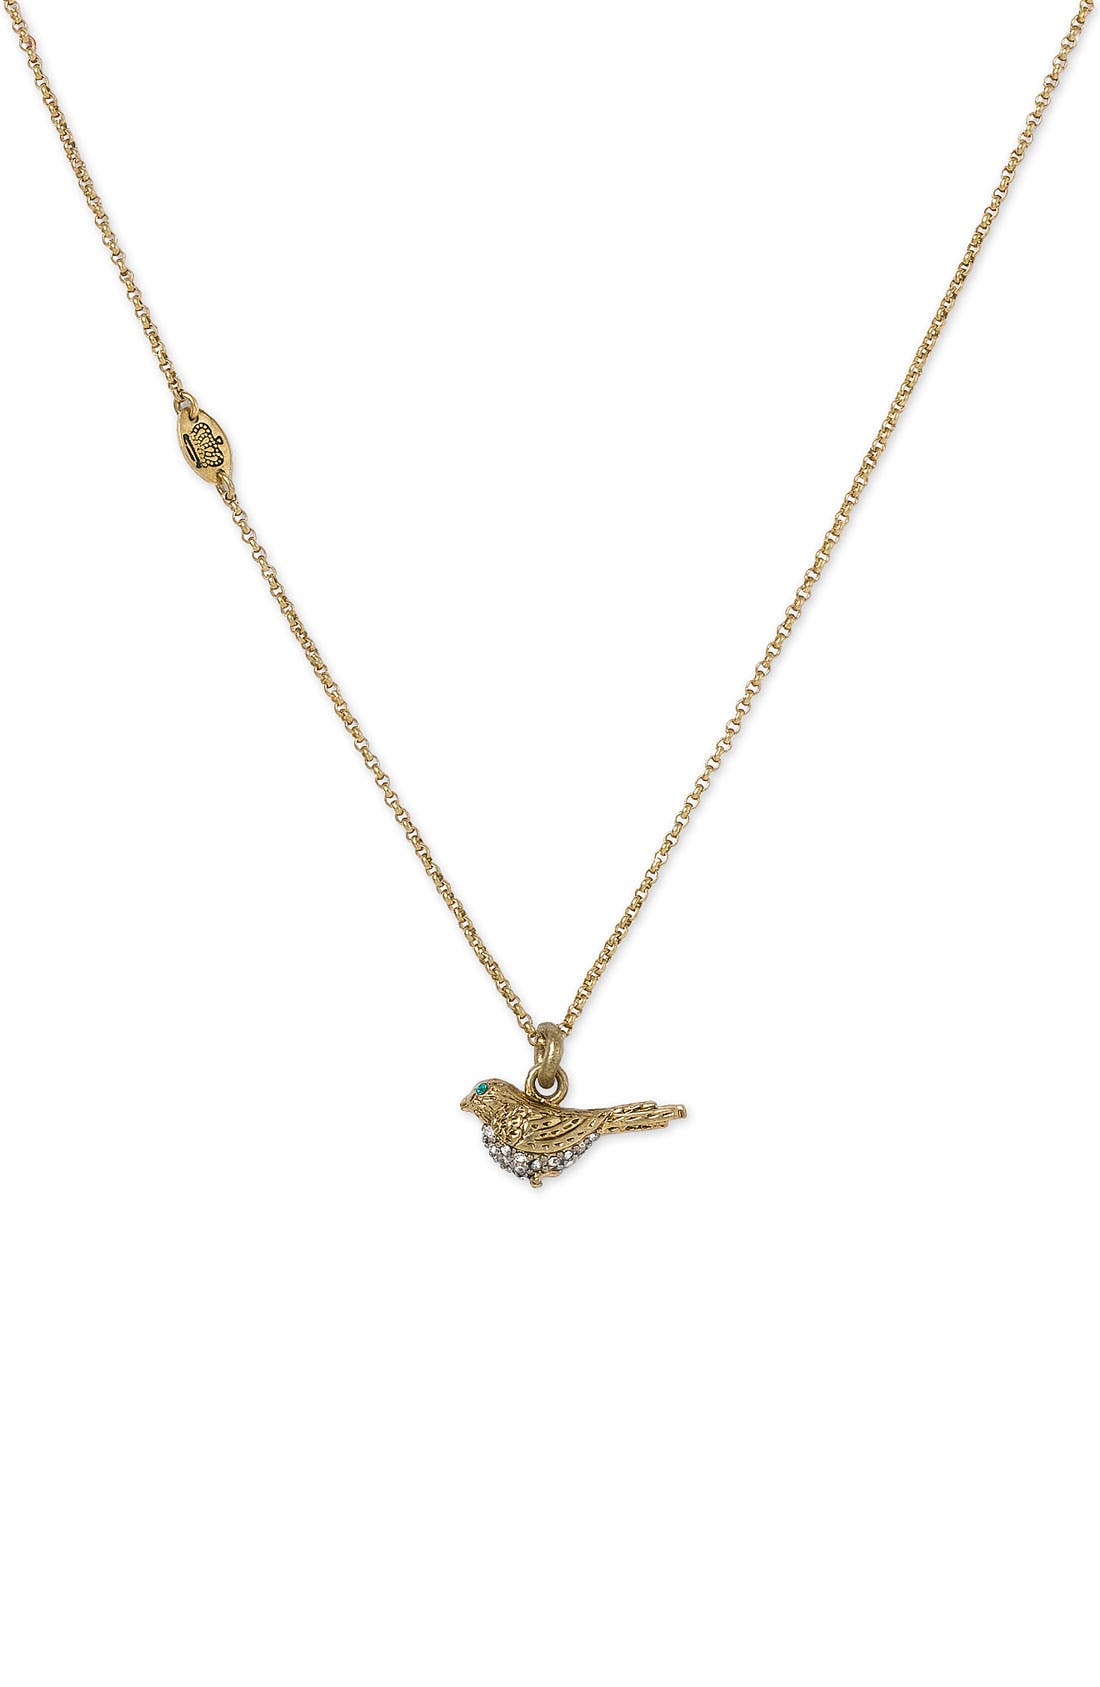 Main Image - Juicy Couture 'Wish' Sparrow Necklace